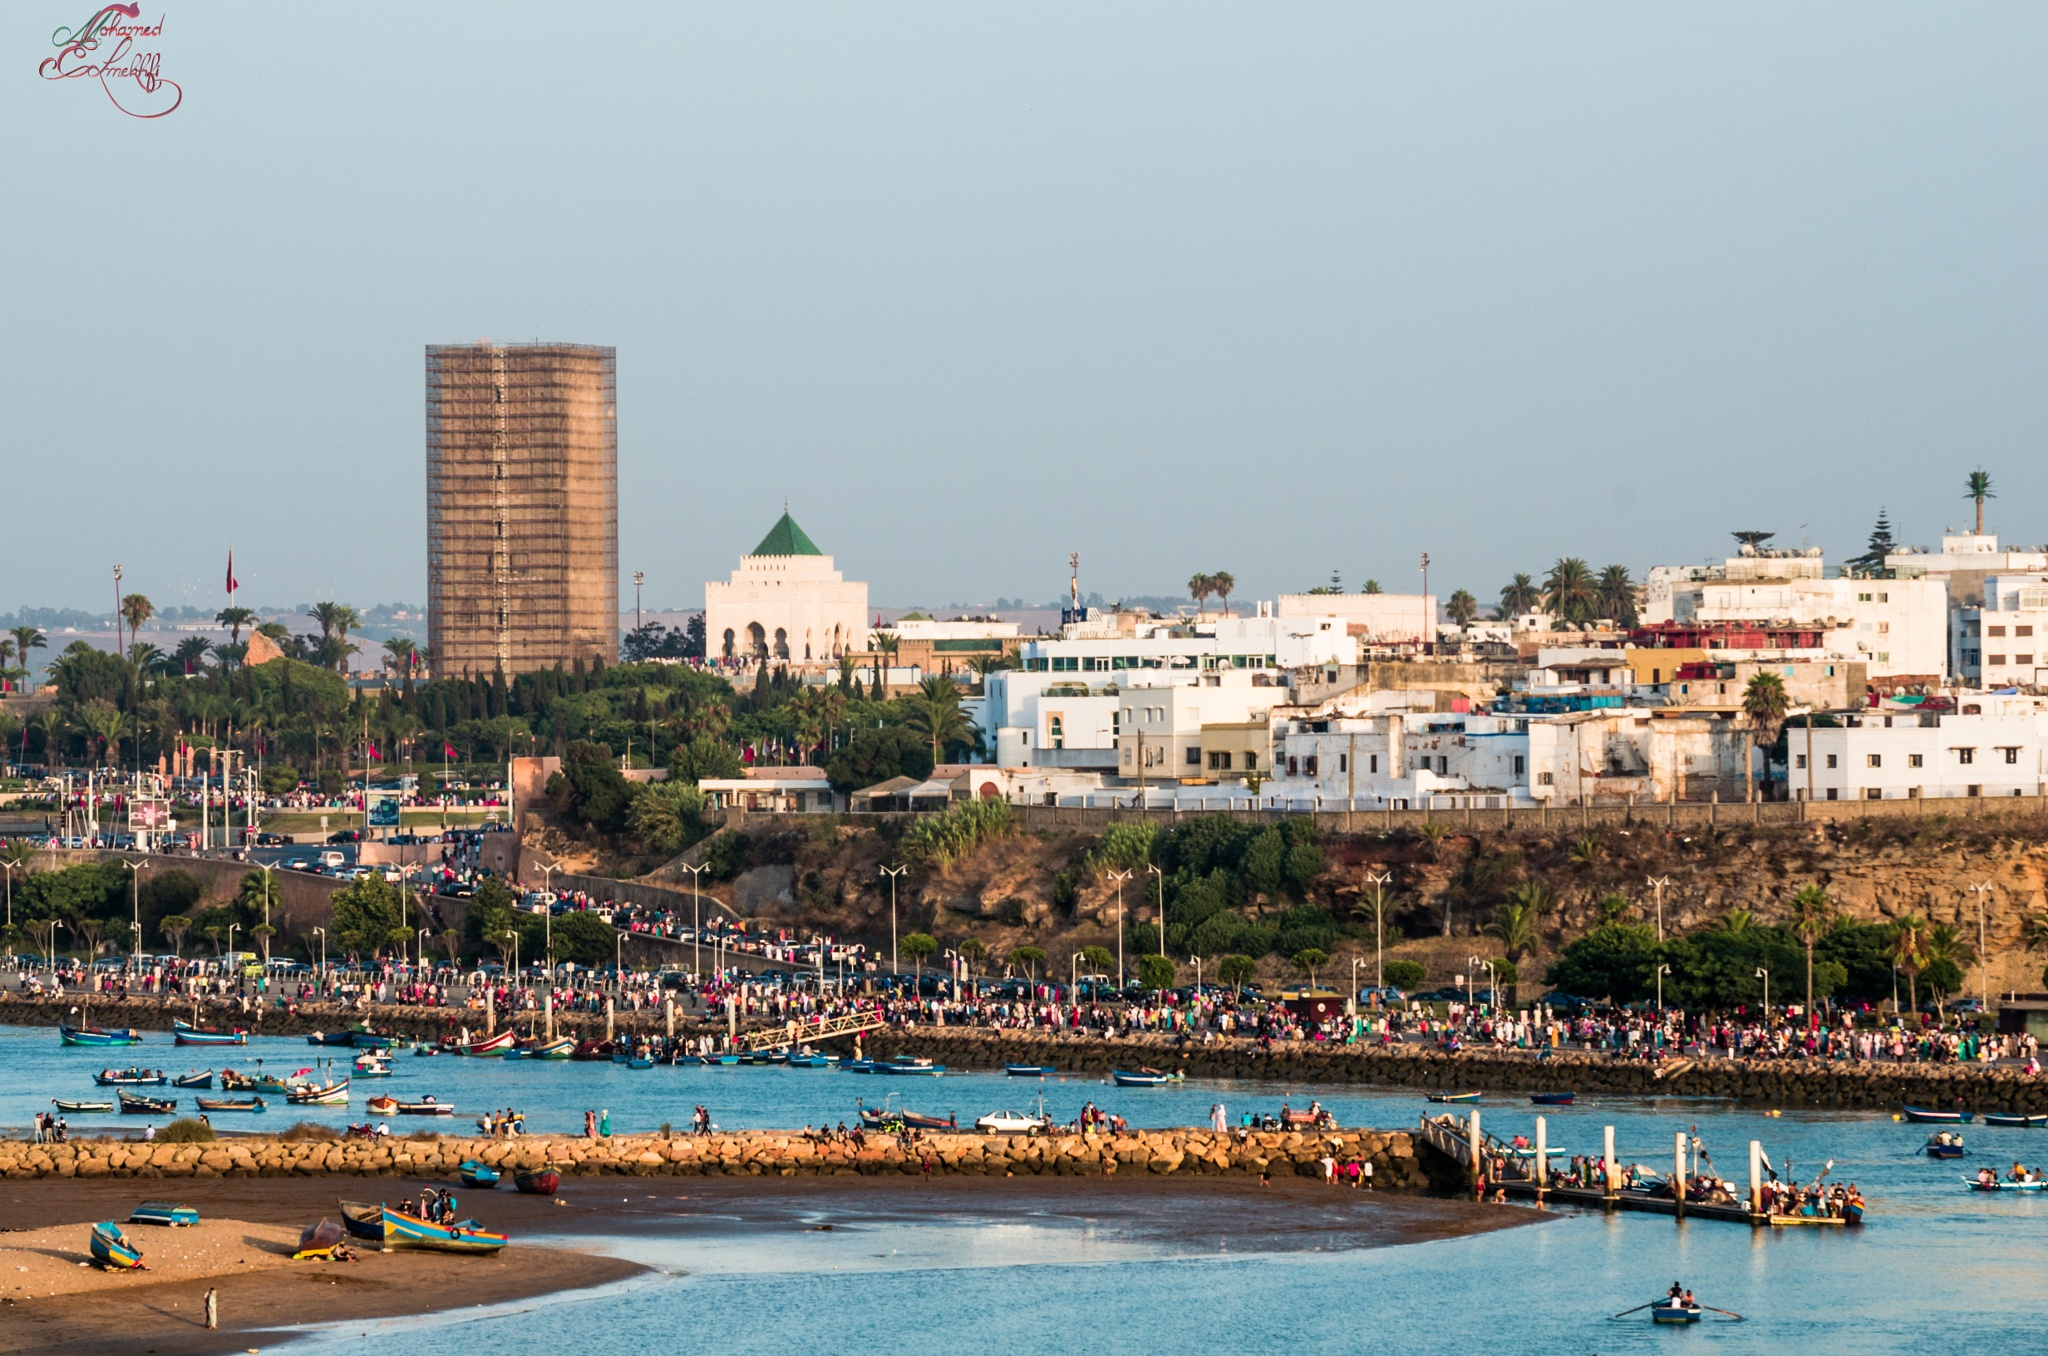 the City of rabat the day of a holiday by mohamedelmekhfi